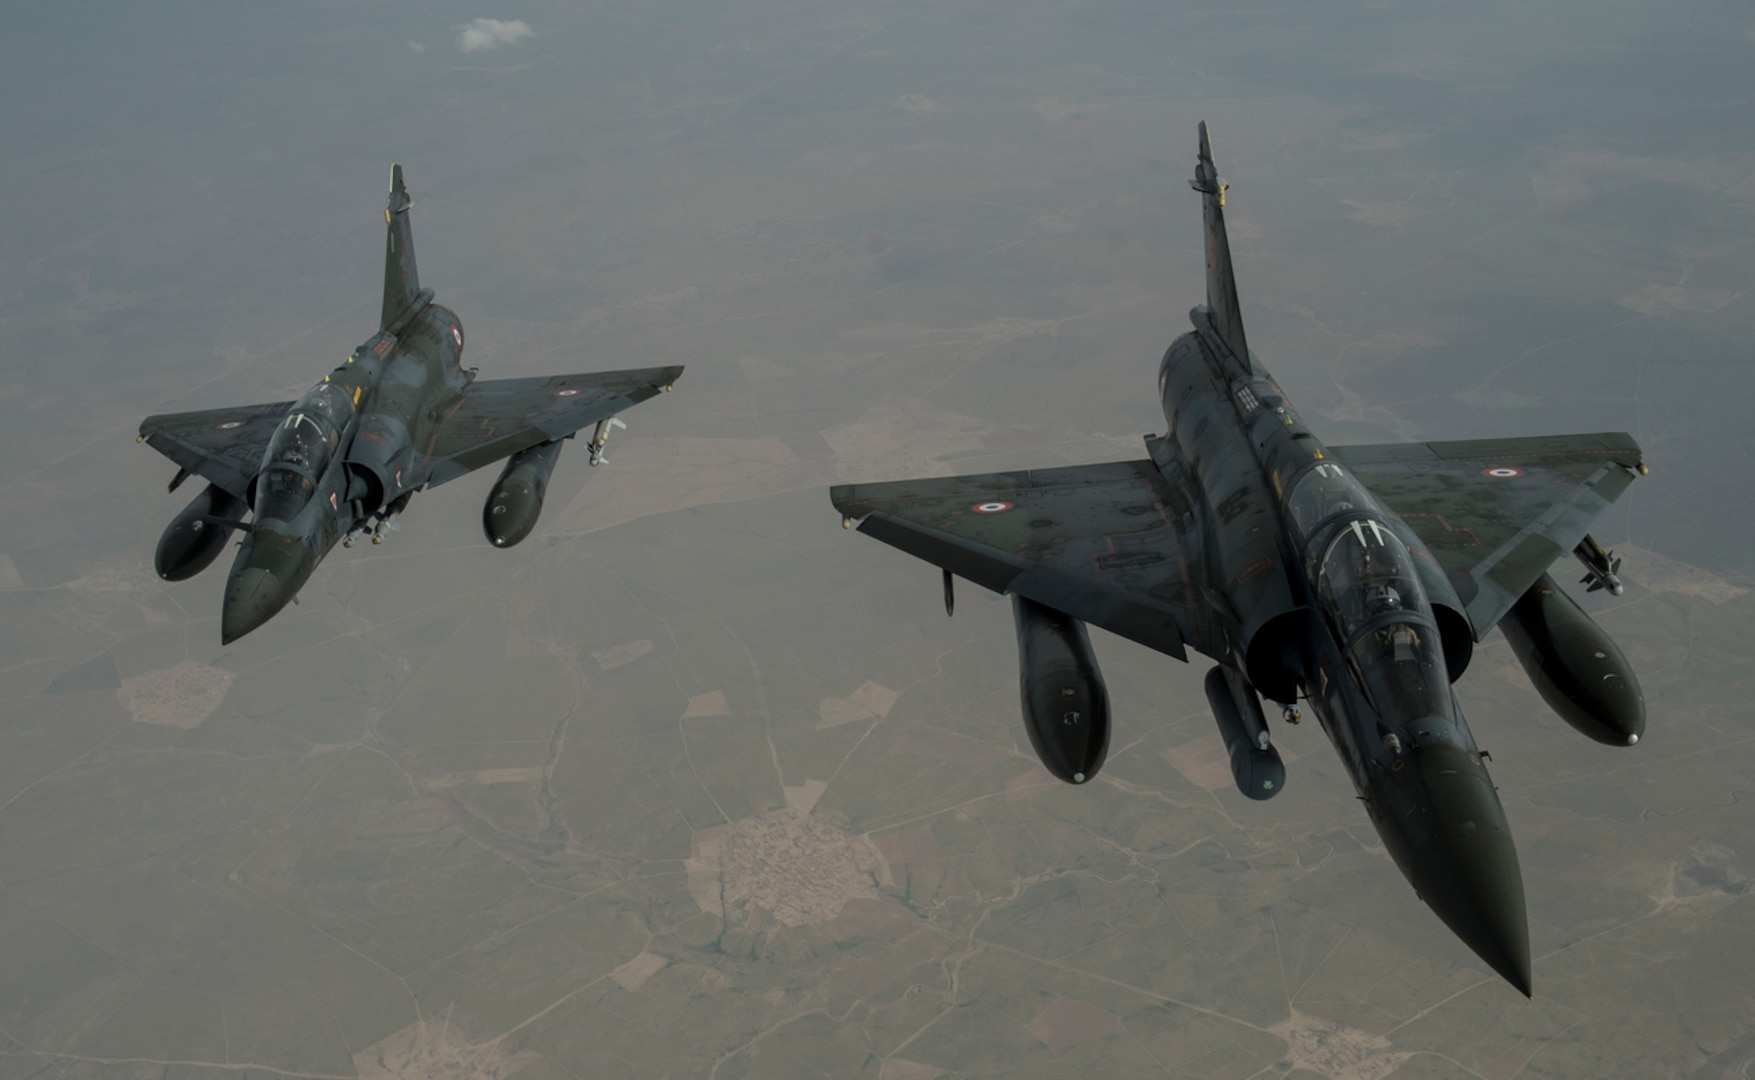 Two French Mirage 2000Ds fly over Iraq in support of Operation Inherent Resolve April 8, 2016. A coalition of regional and international nations have joined together to defeat ISIL and the threat they pose to Iraq, Syria, the region and the wider international community. (U.S. Air Force photo by Staff Sgt. Corey Hook)